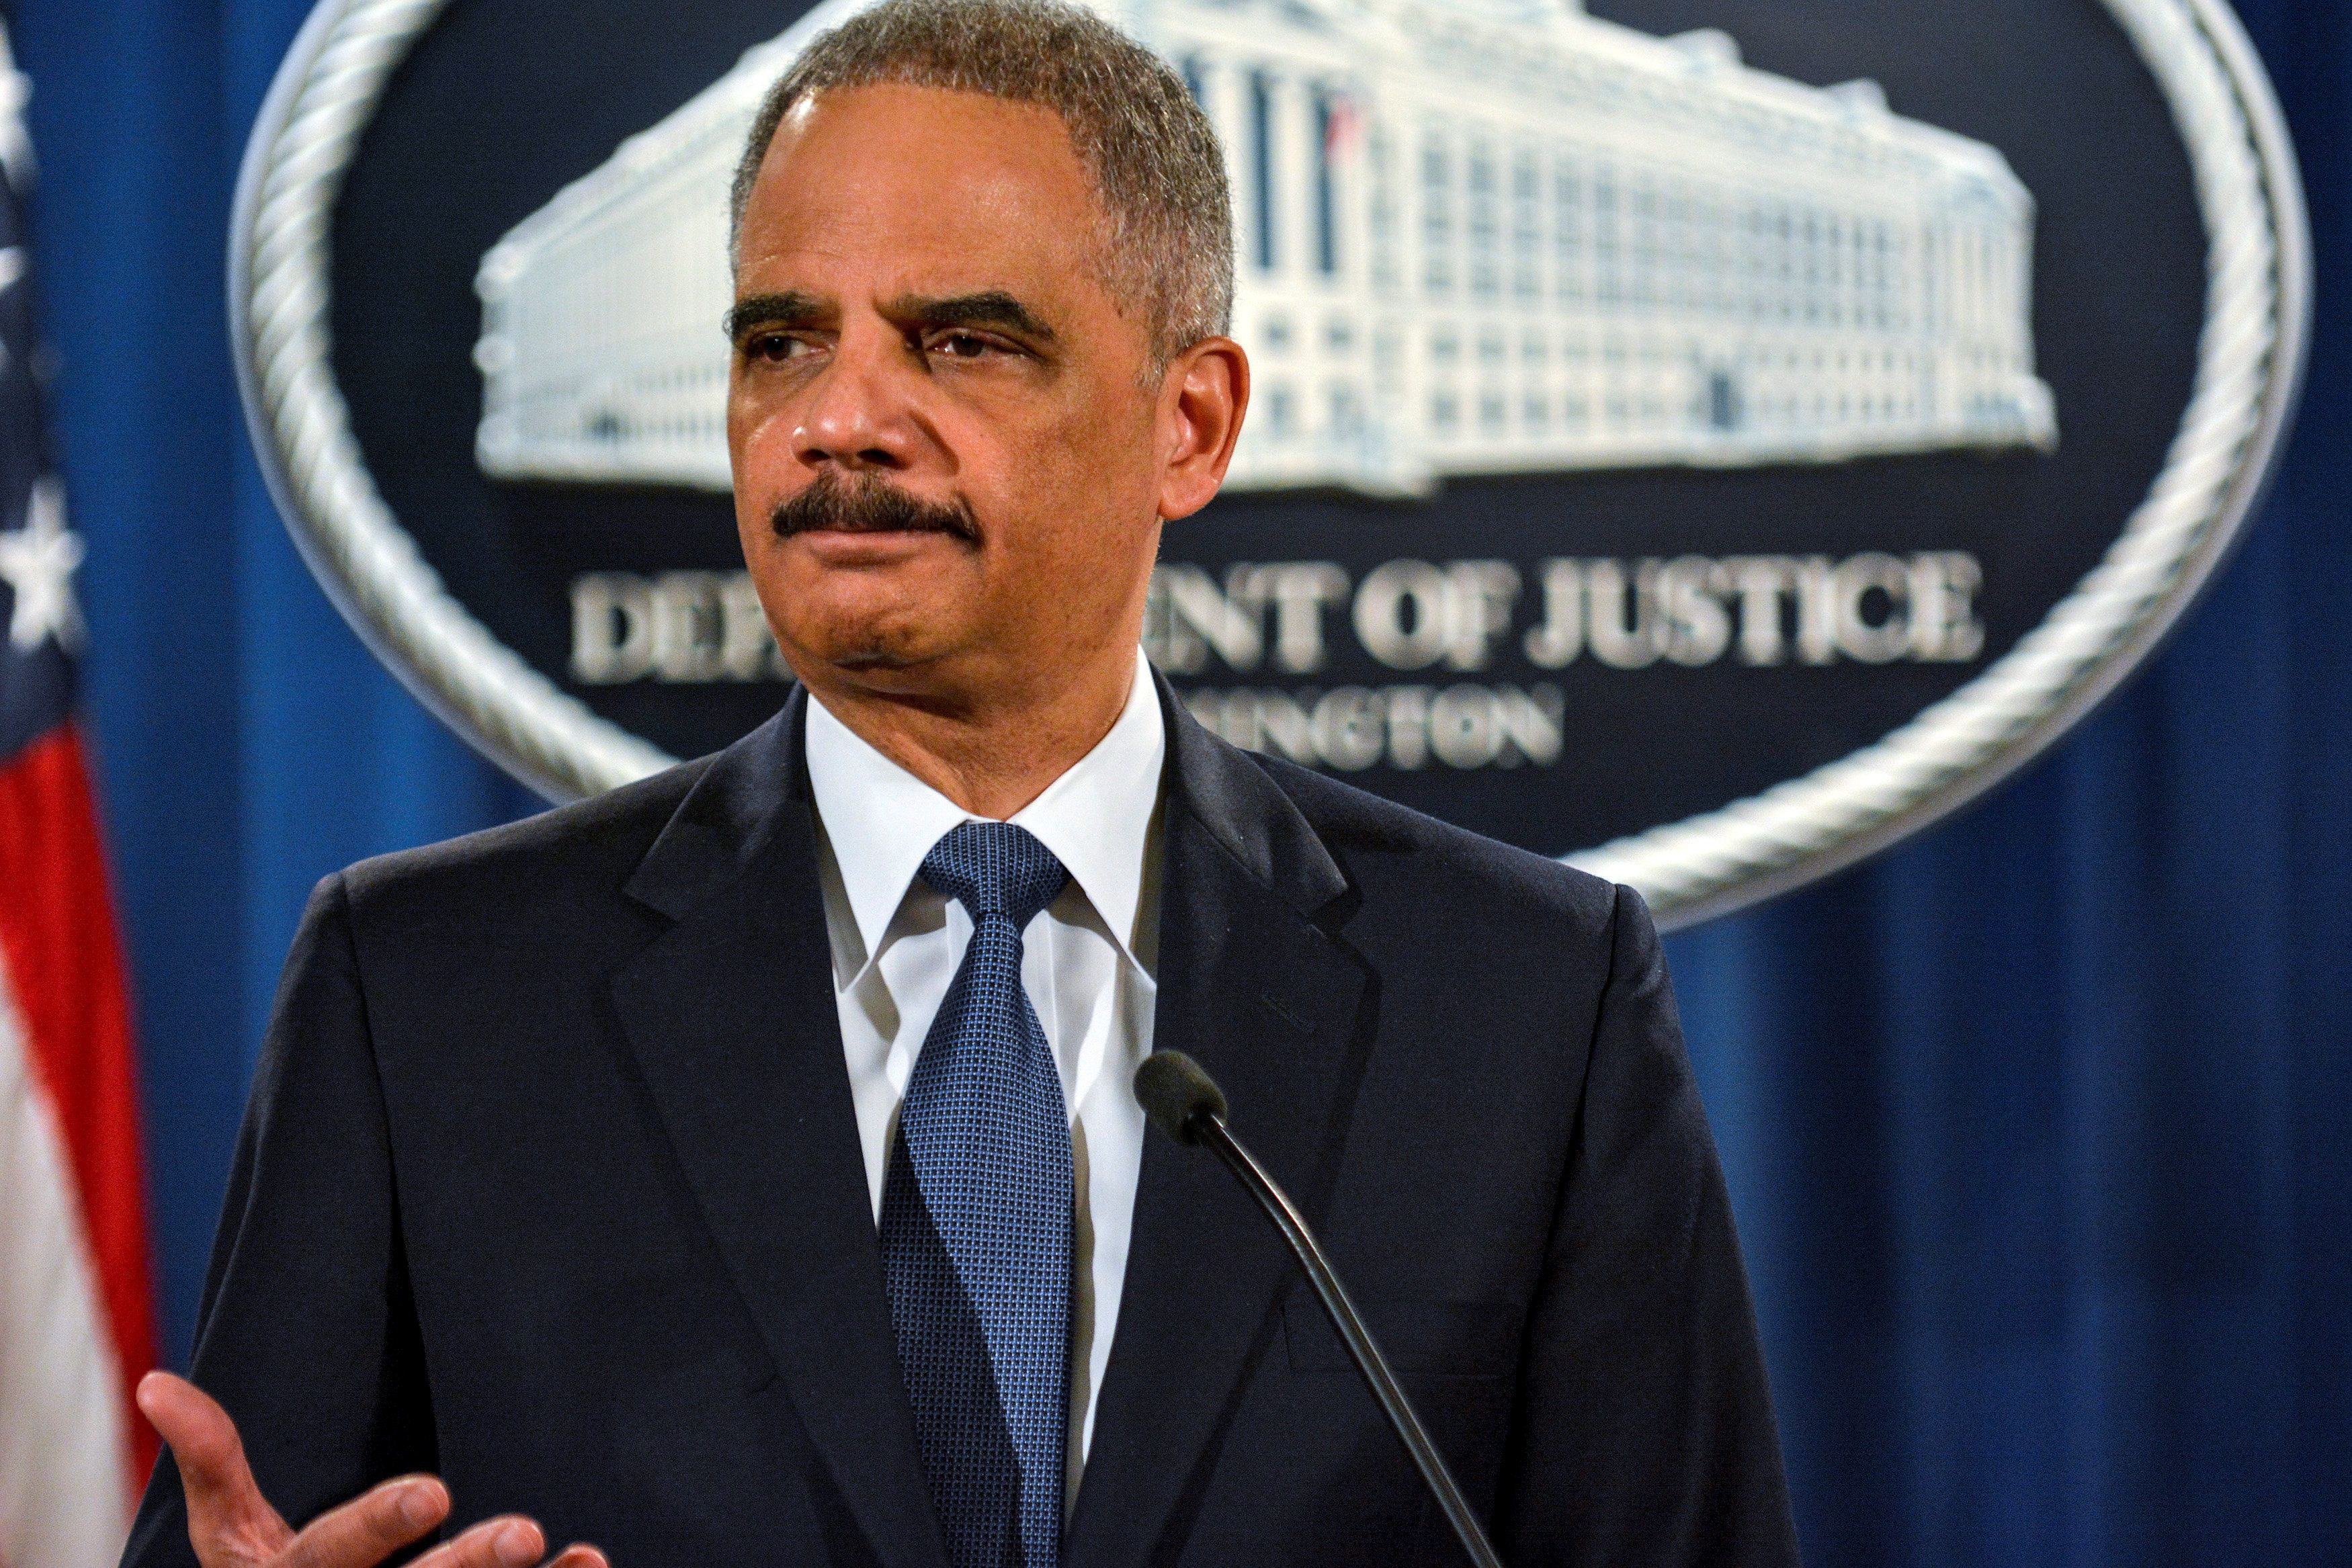 Eric Holder thinks his successor needs to step up.